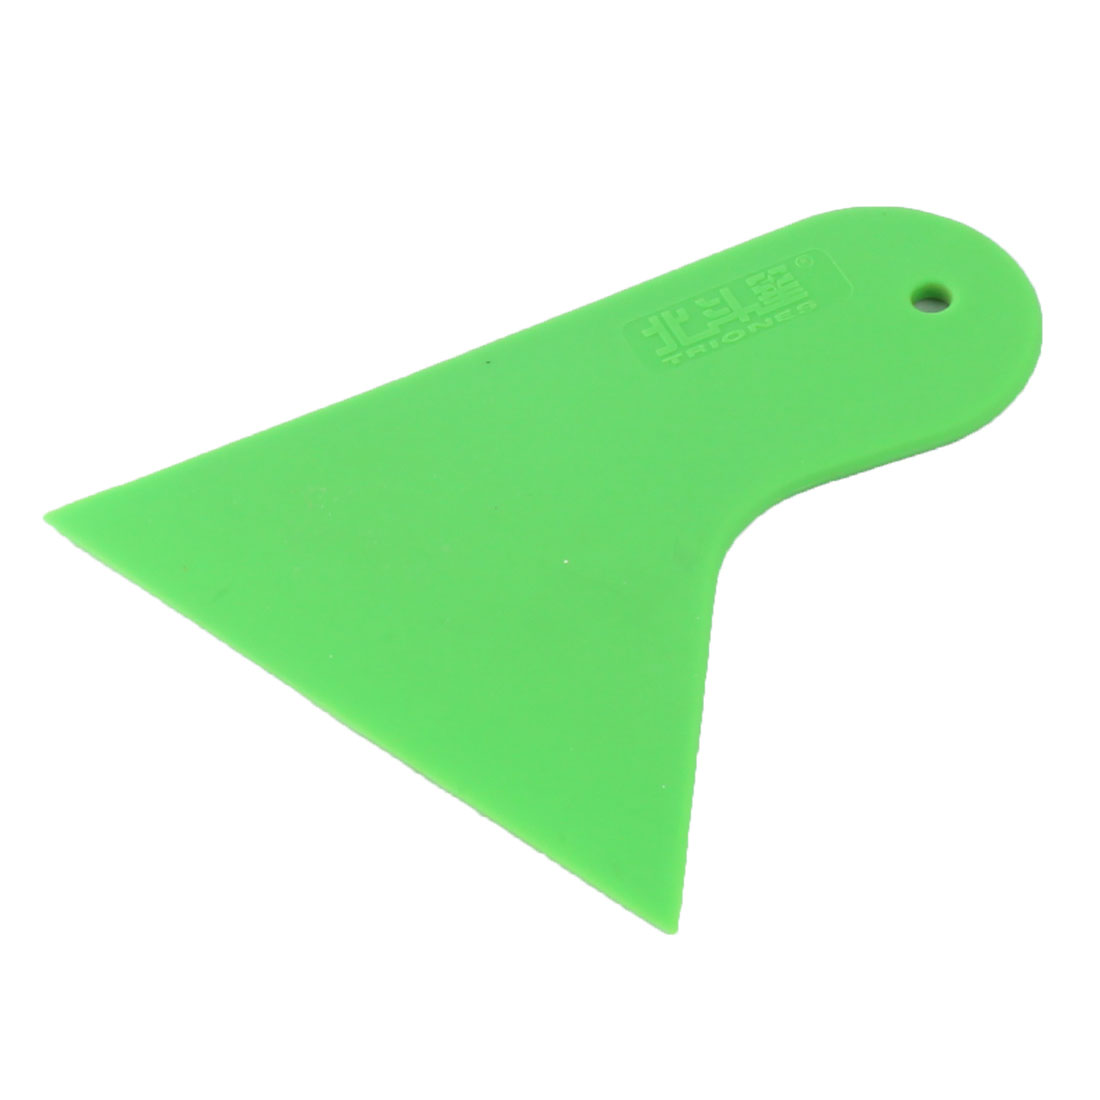 Car Auto Window Film Wrap Installation Cleaning Scraper Tool Green 10.5 x 9.8 x 0.4cm